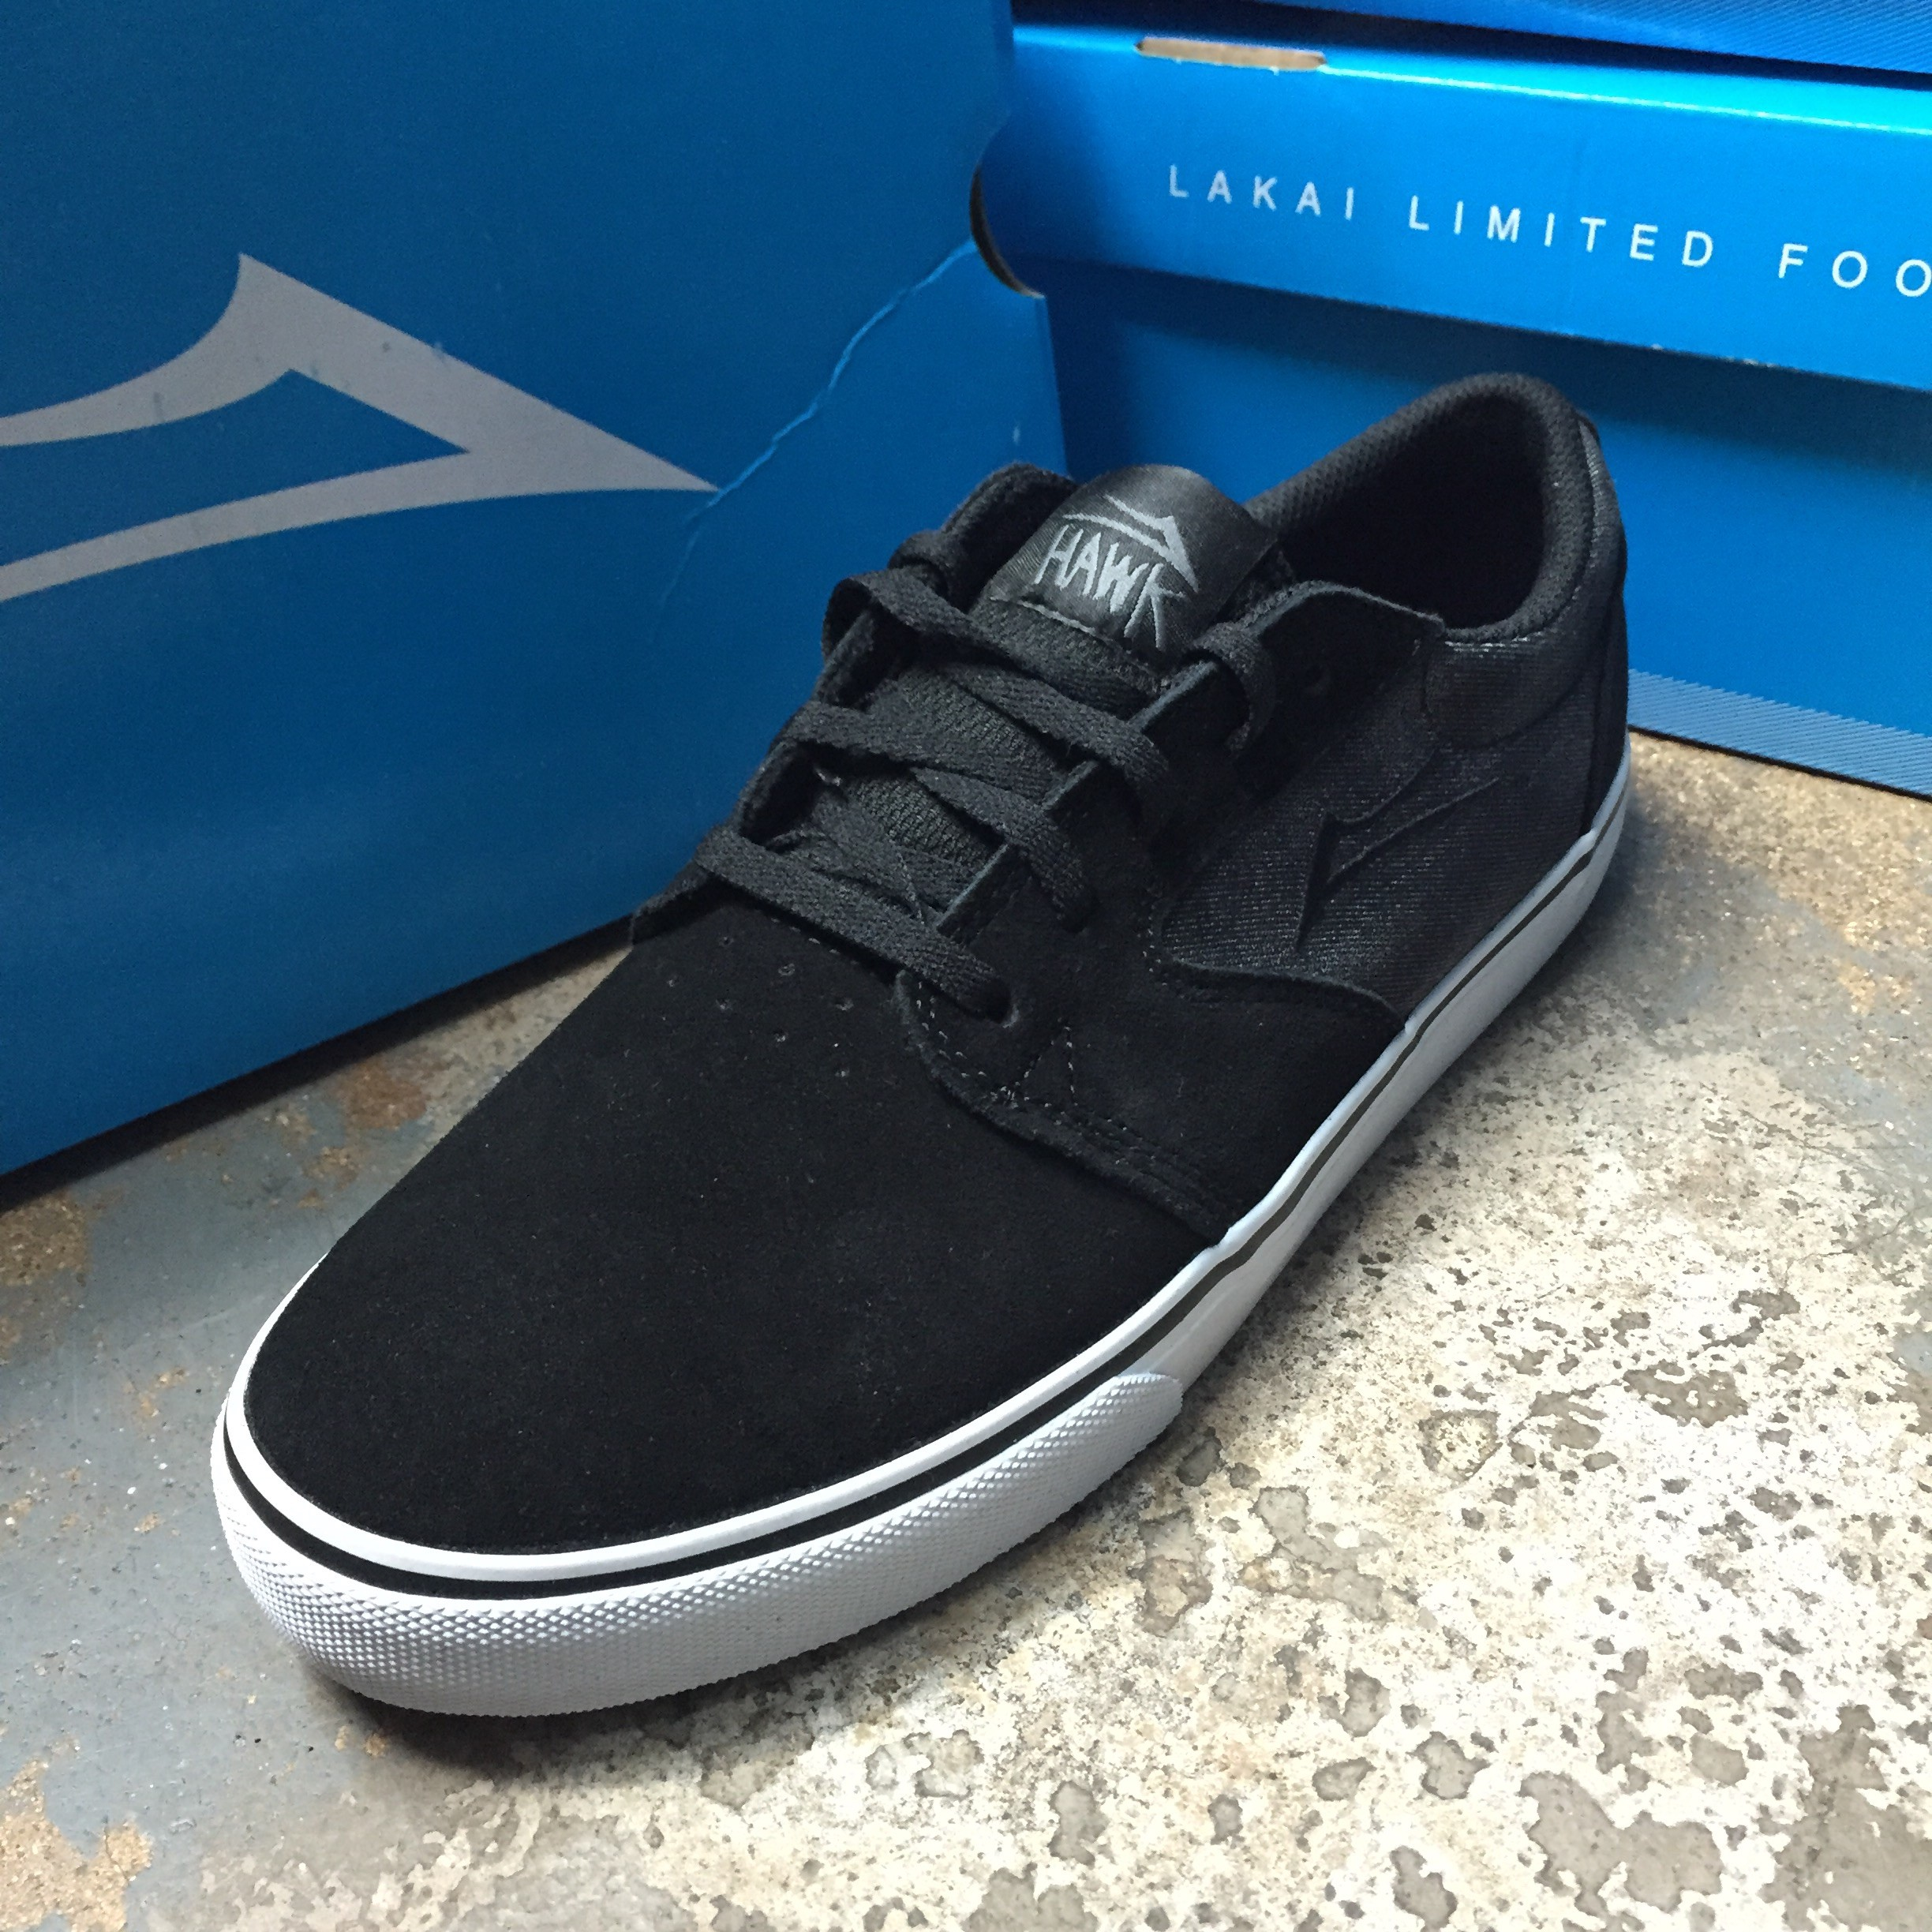 Lakai Fura Riley Hawk black suede